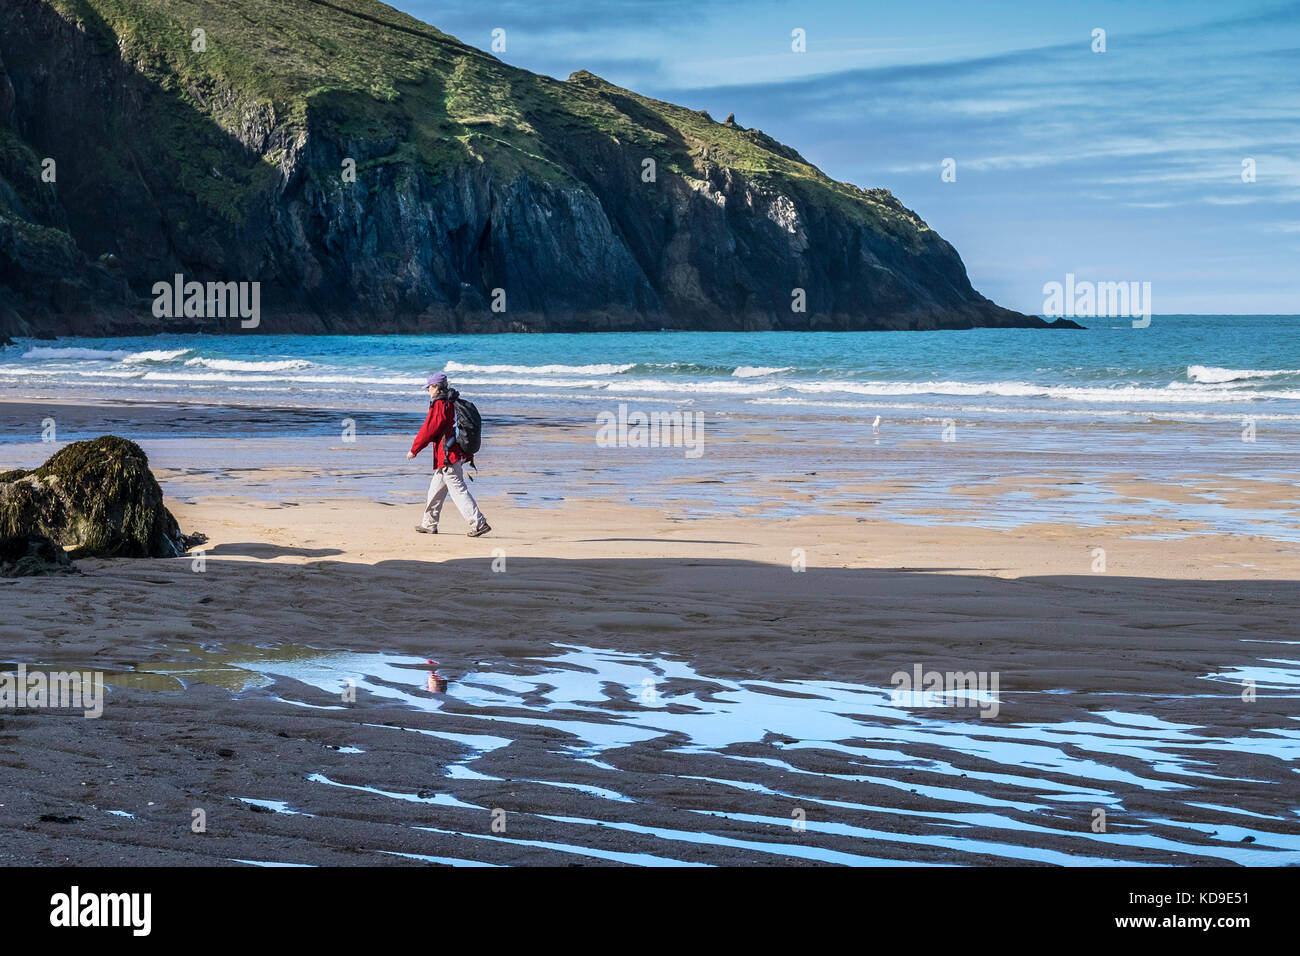 Holywell Bay - a walker on the beach at low tide at Holywell Bay Cornwall. - Stock Image